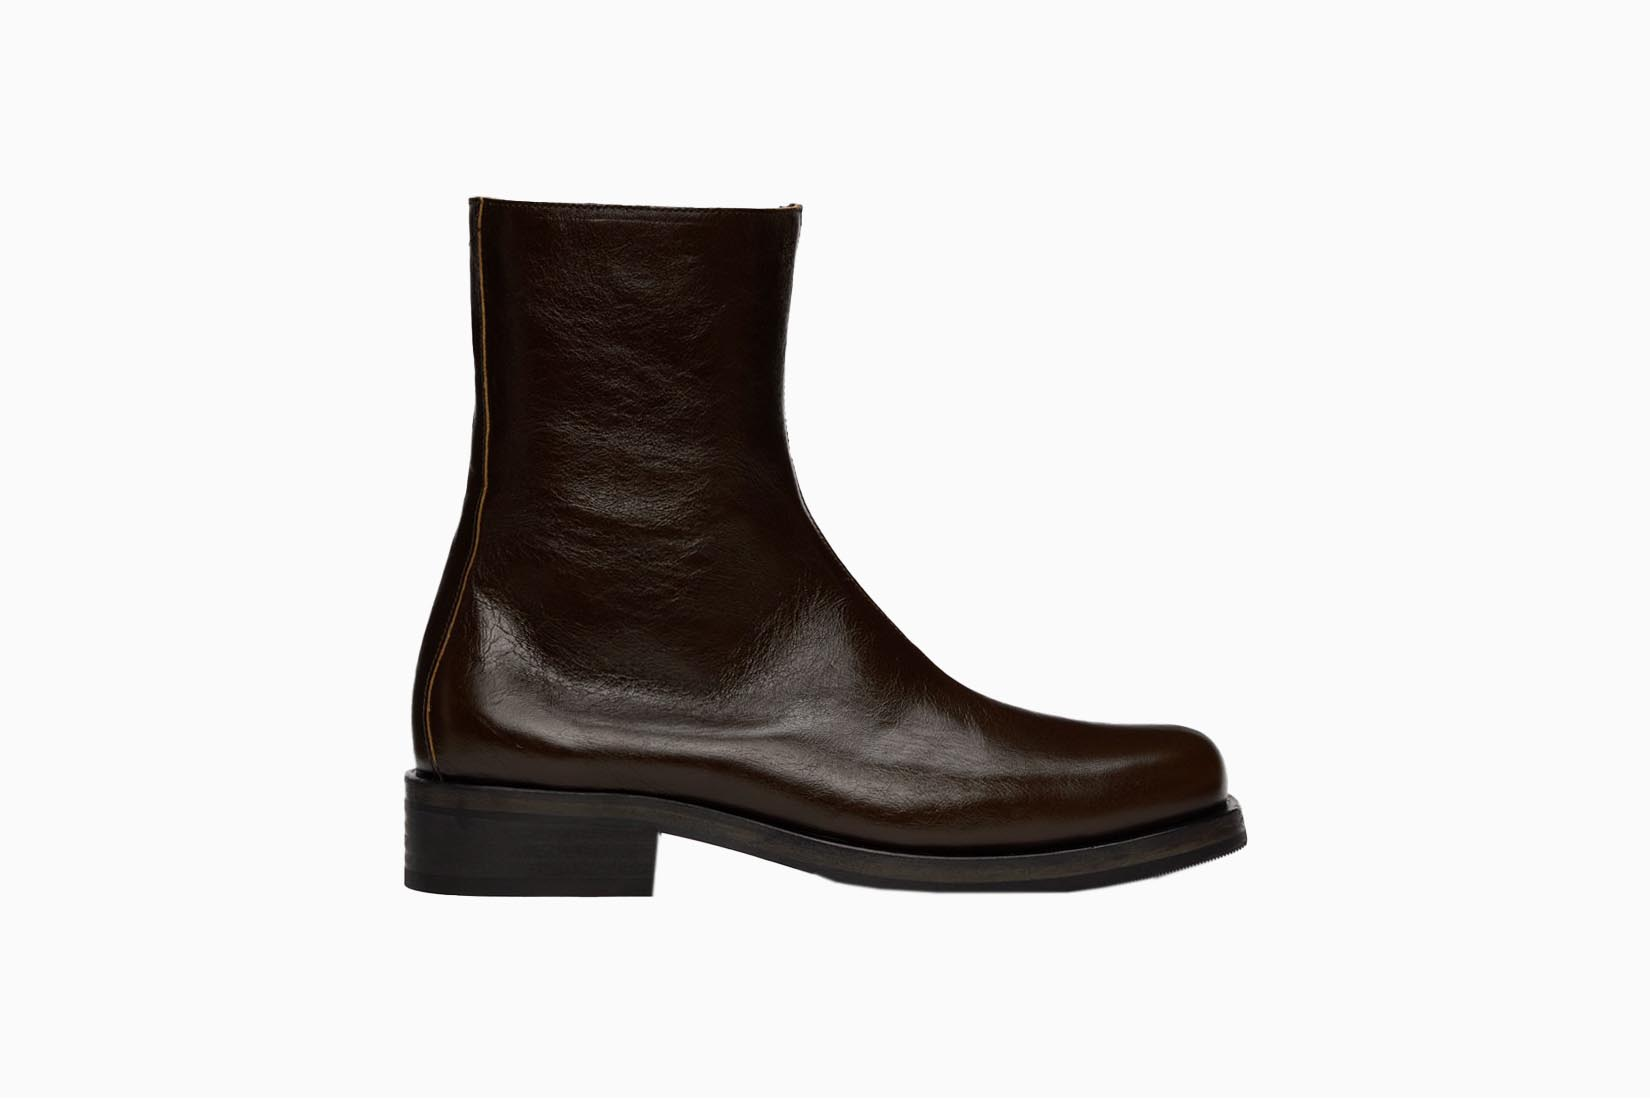 best boots men our legacy camion boots review Luxe Digital